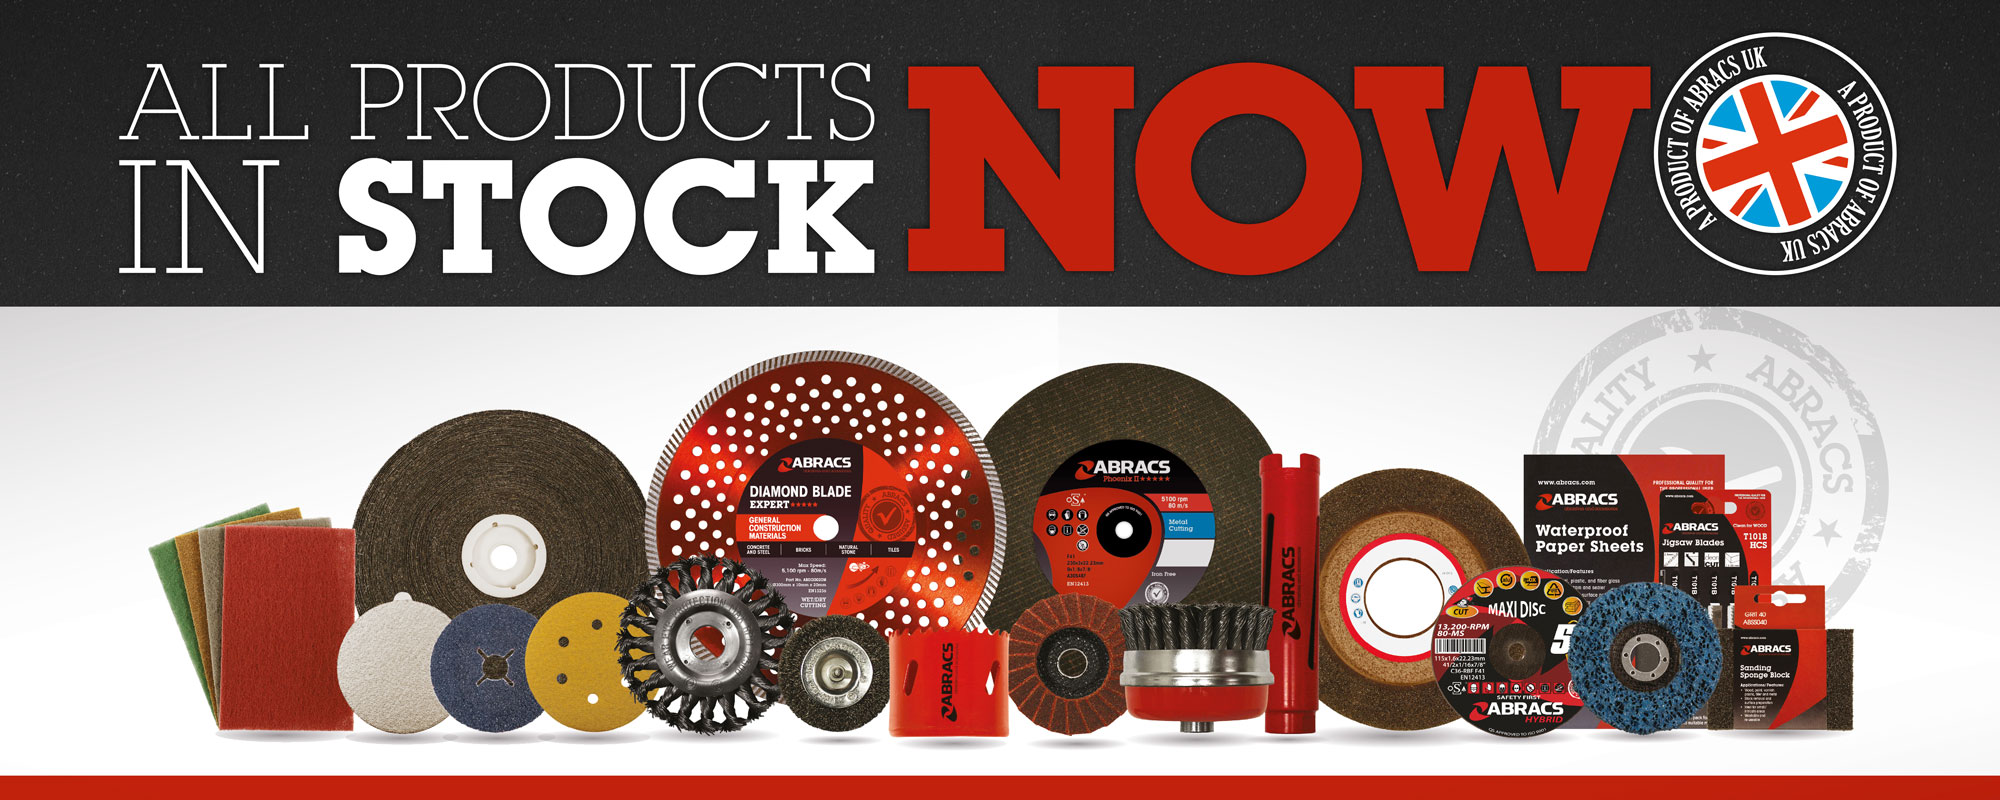 Abracs Product Range Image Displaying All Products In Stock